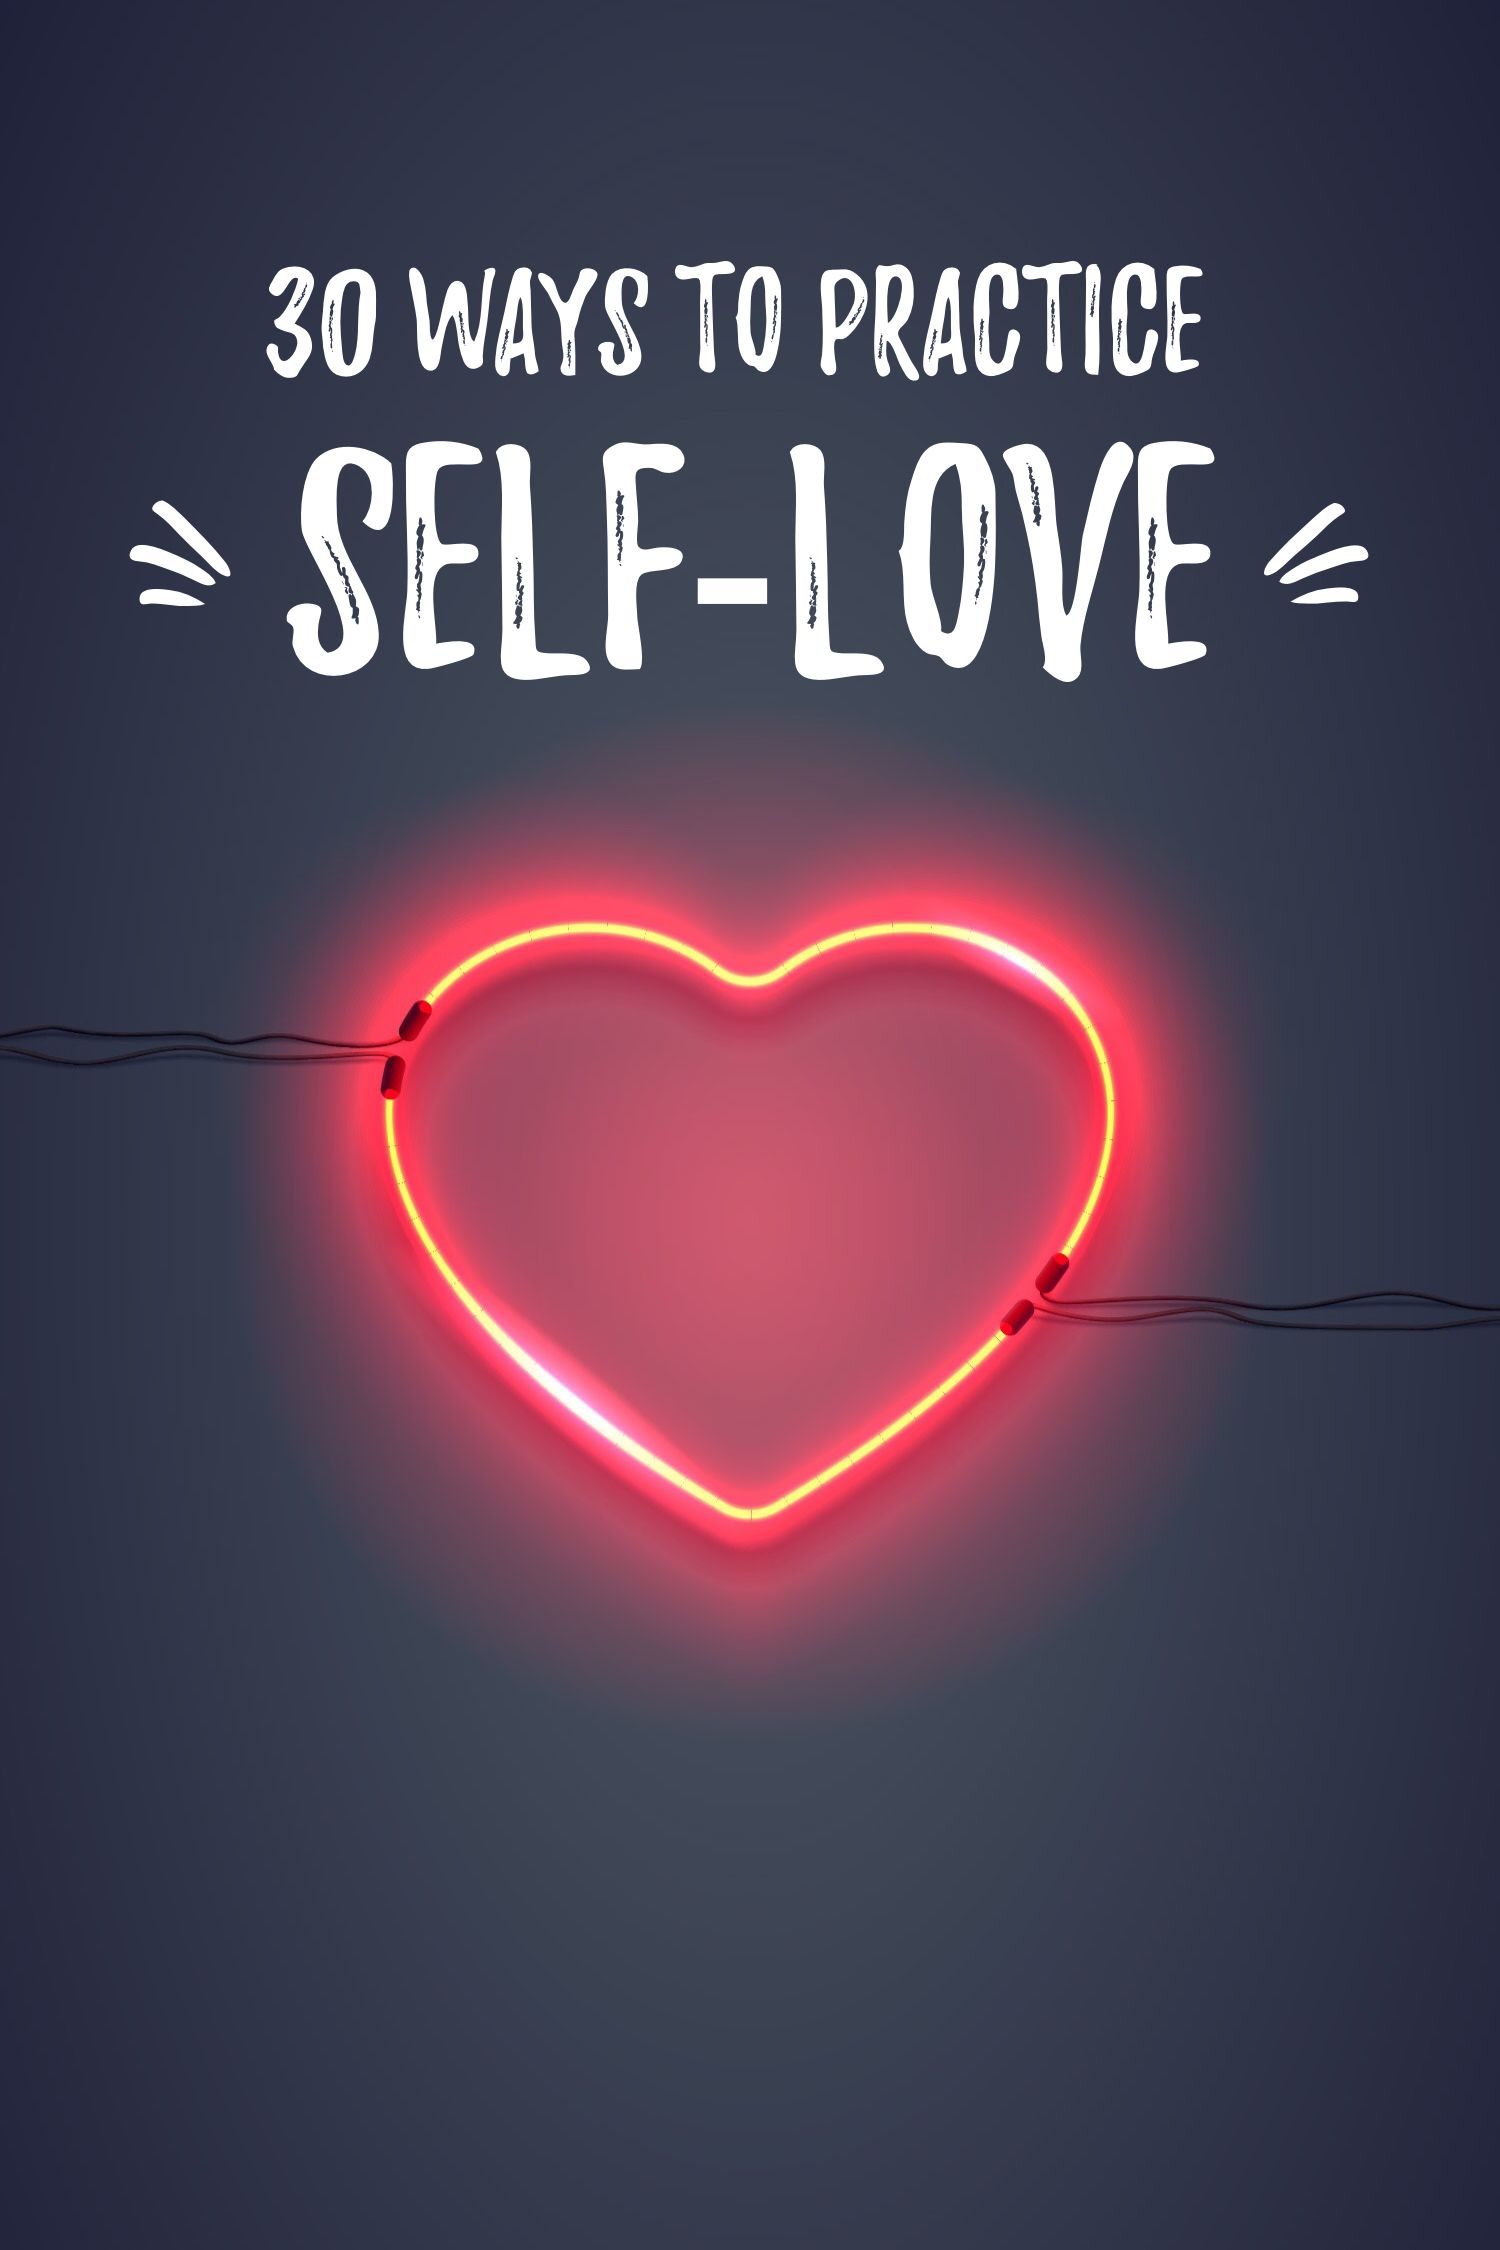 30 Simple Ways To Practice Self Love